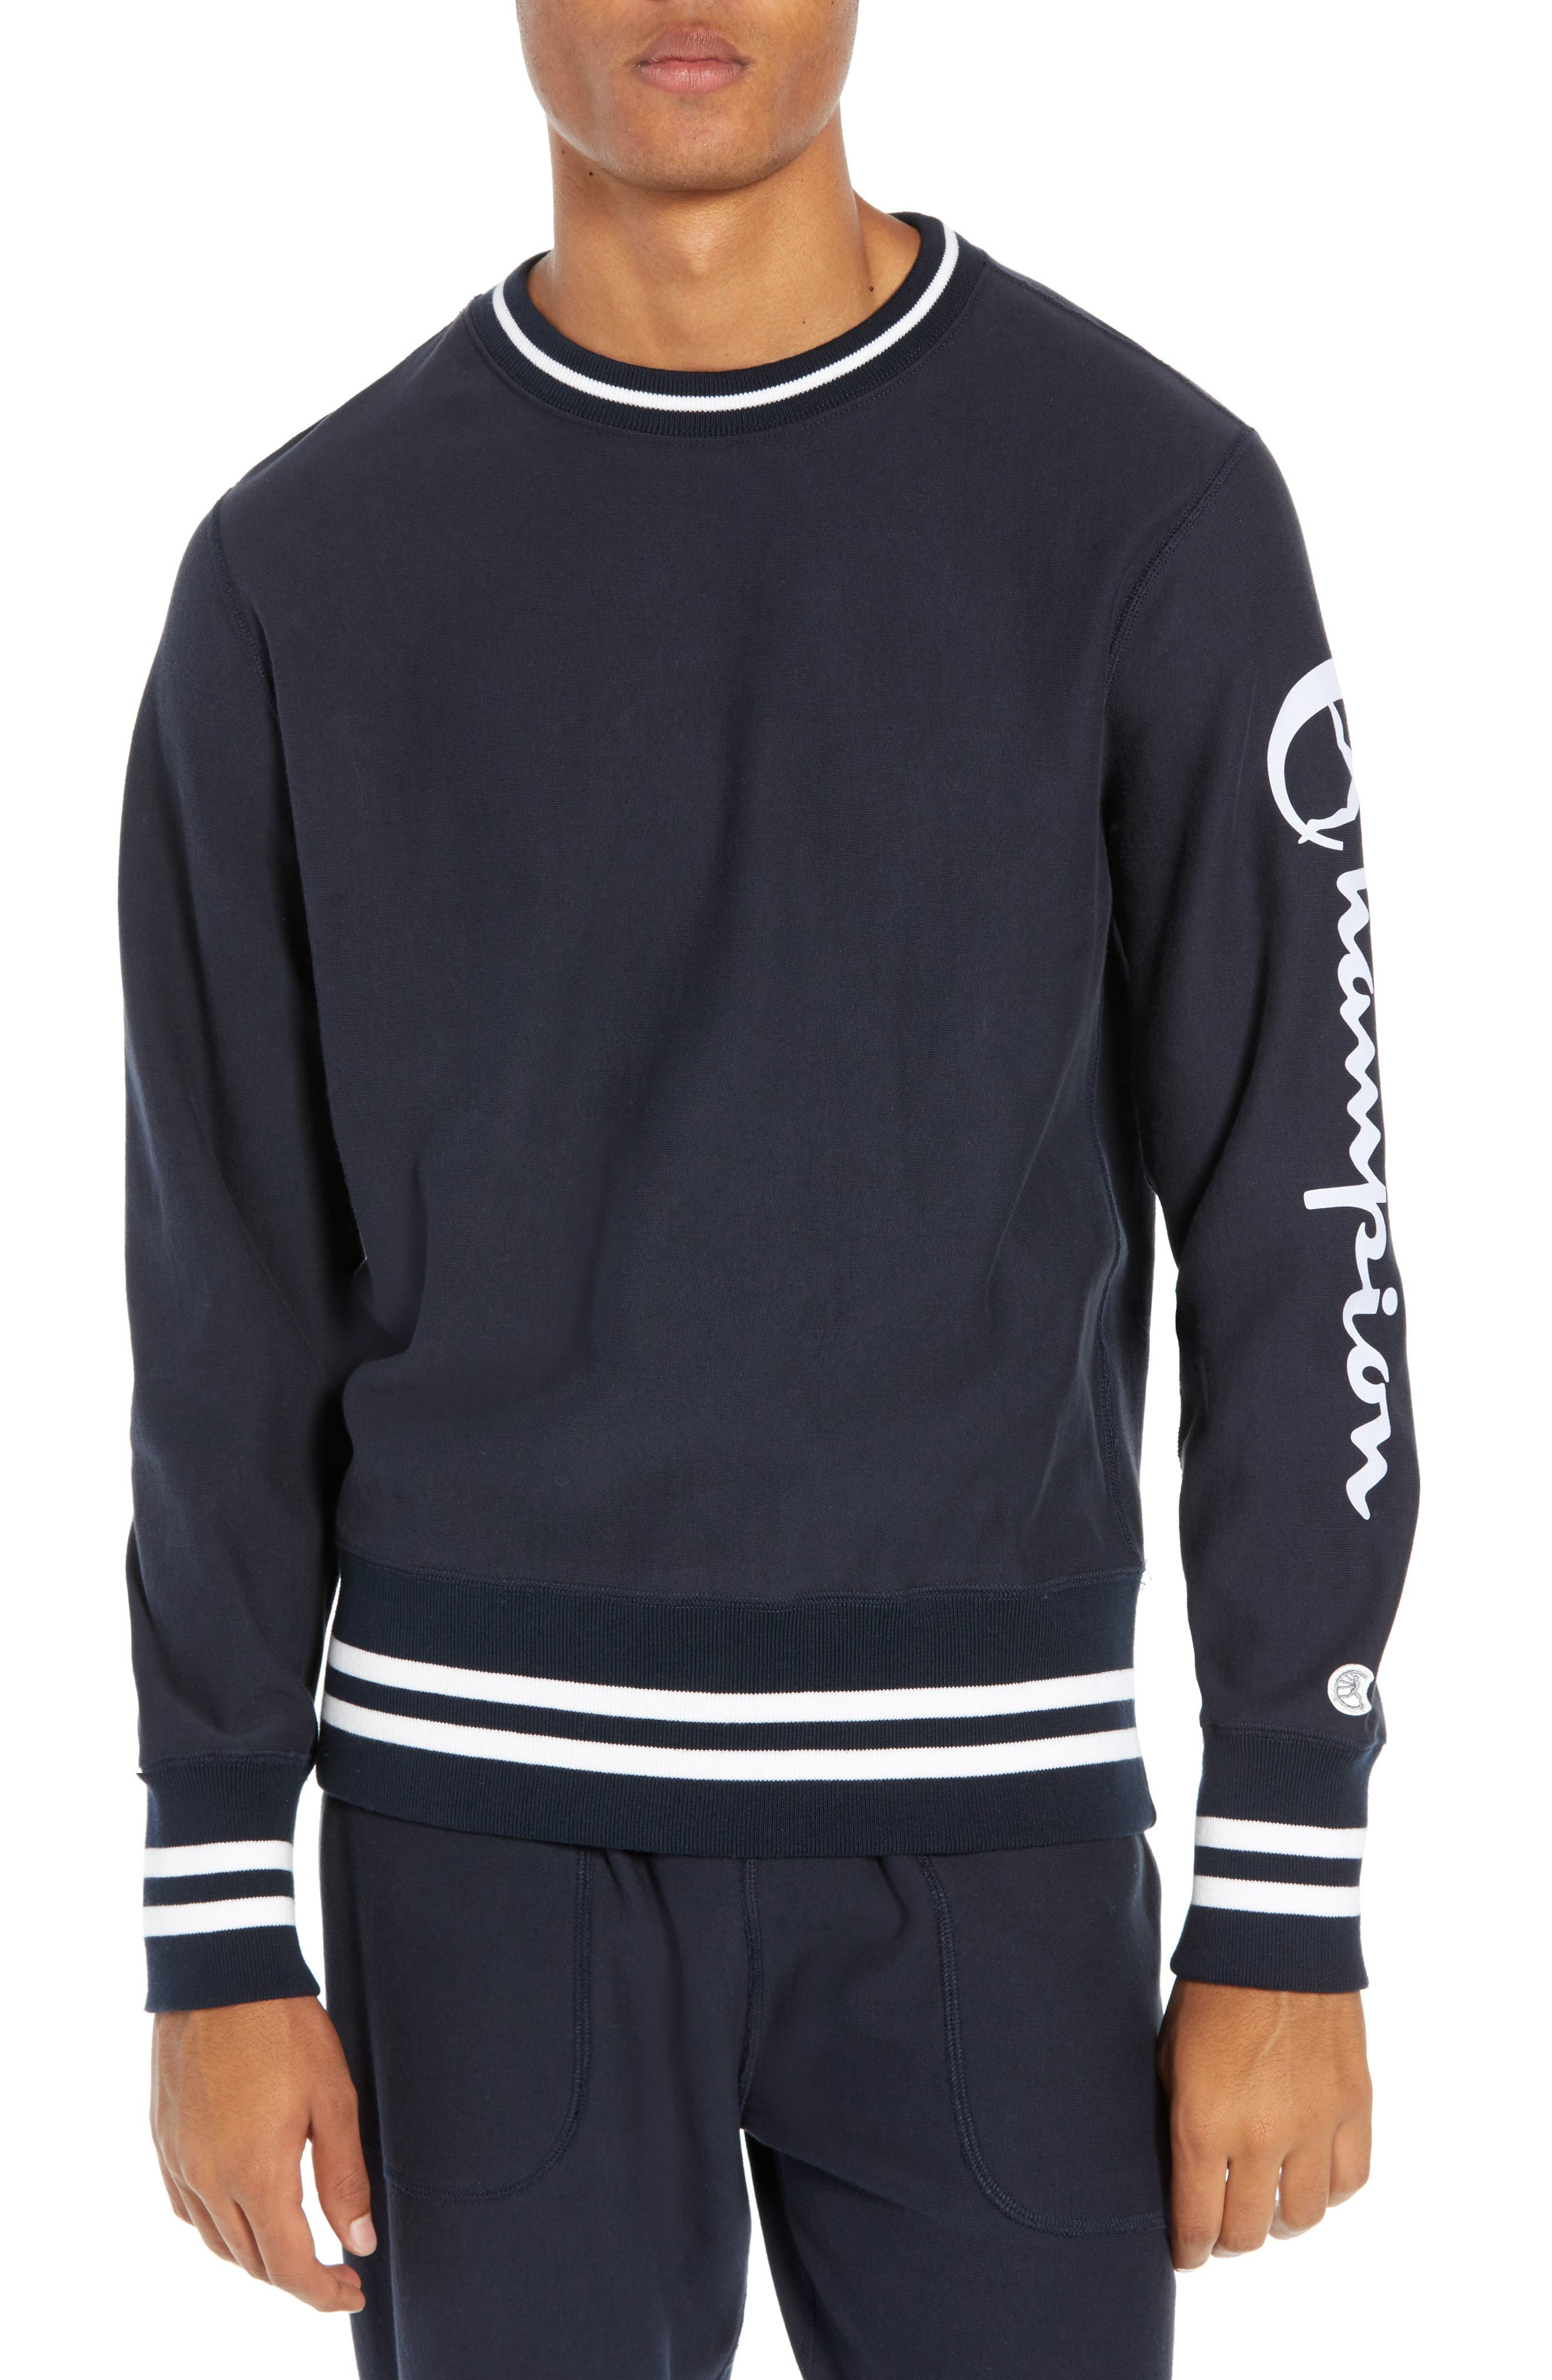 Champion + Todd Snyder Crewneck Sweatshirt by Todd Snyder + Champion